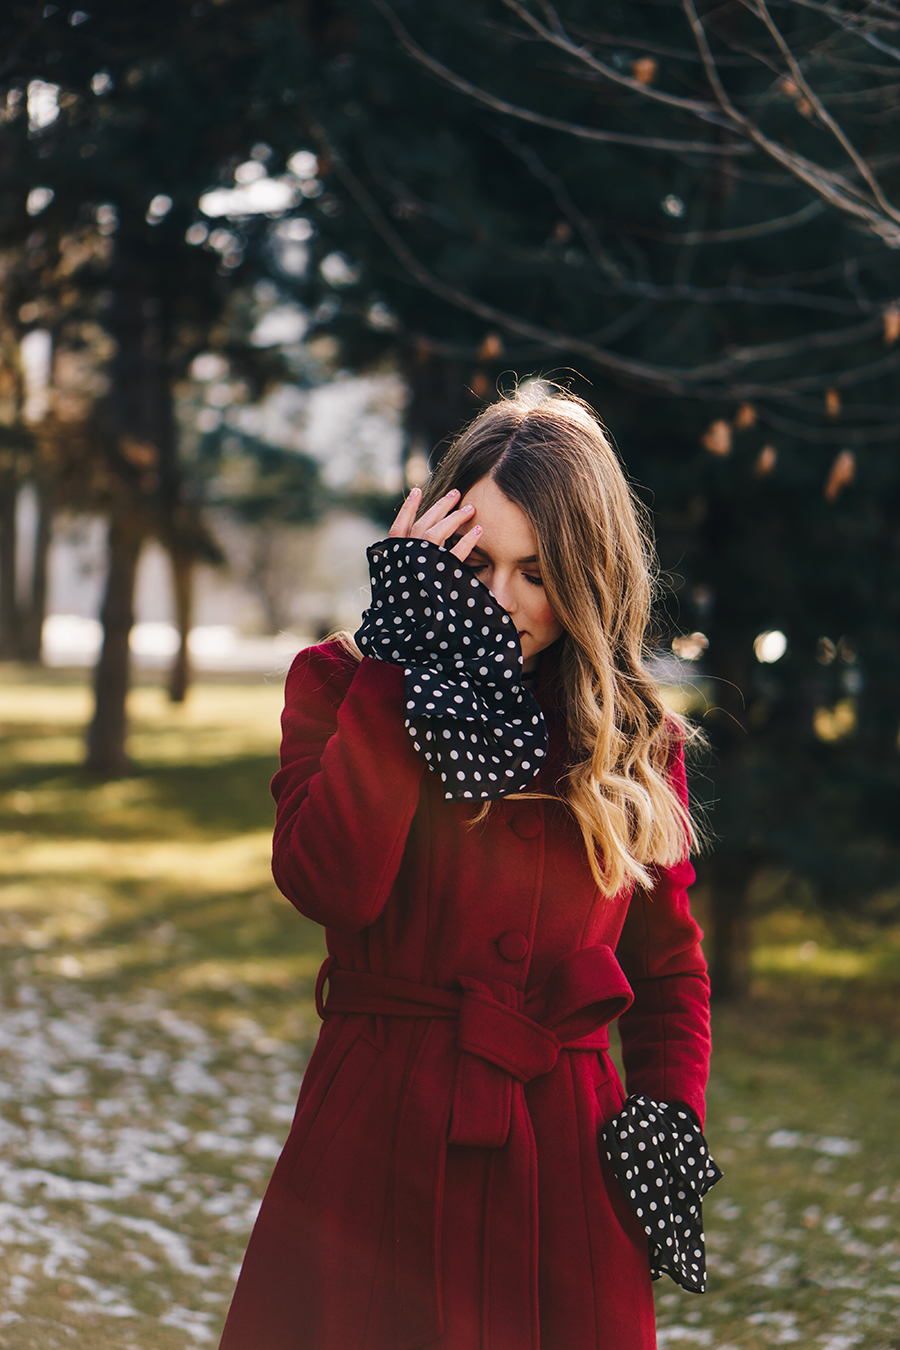 red-wool-coat-polka-dots-bell-sleeves-blouse-winter-outfit-10